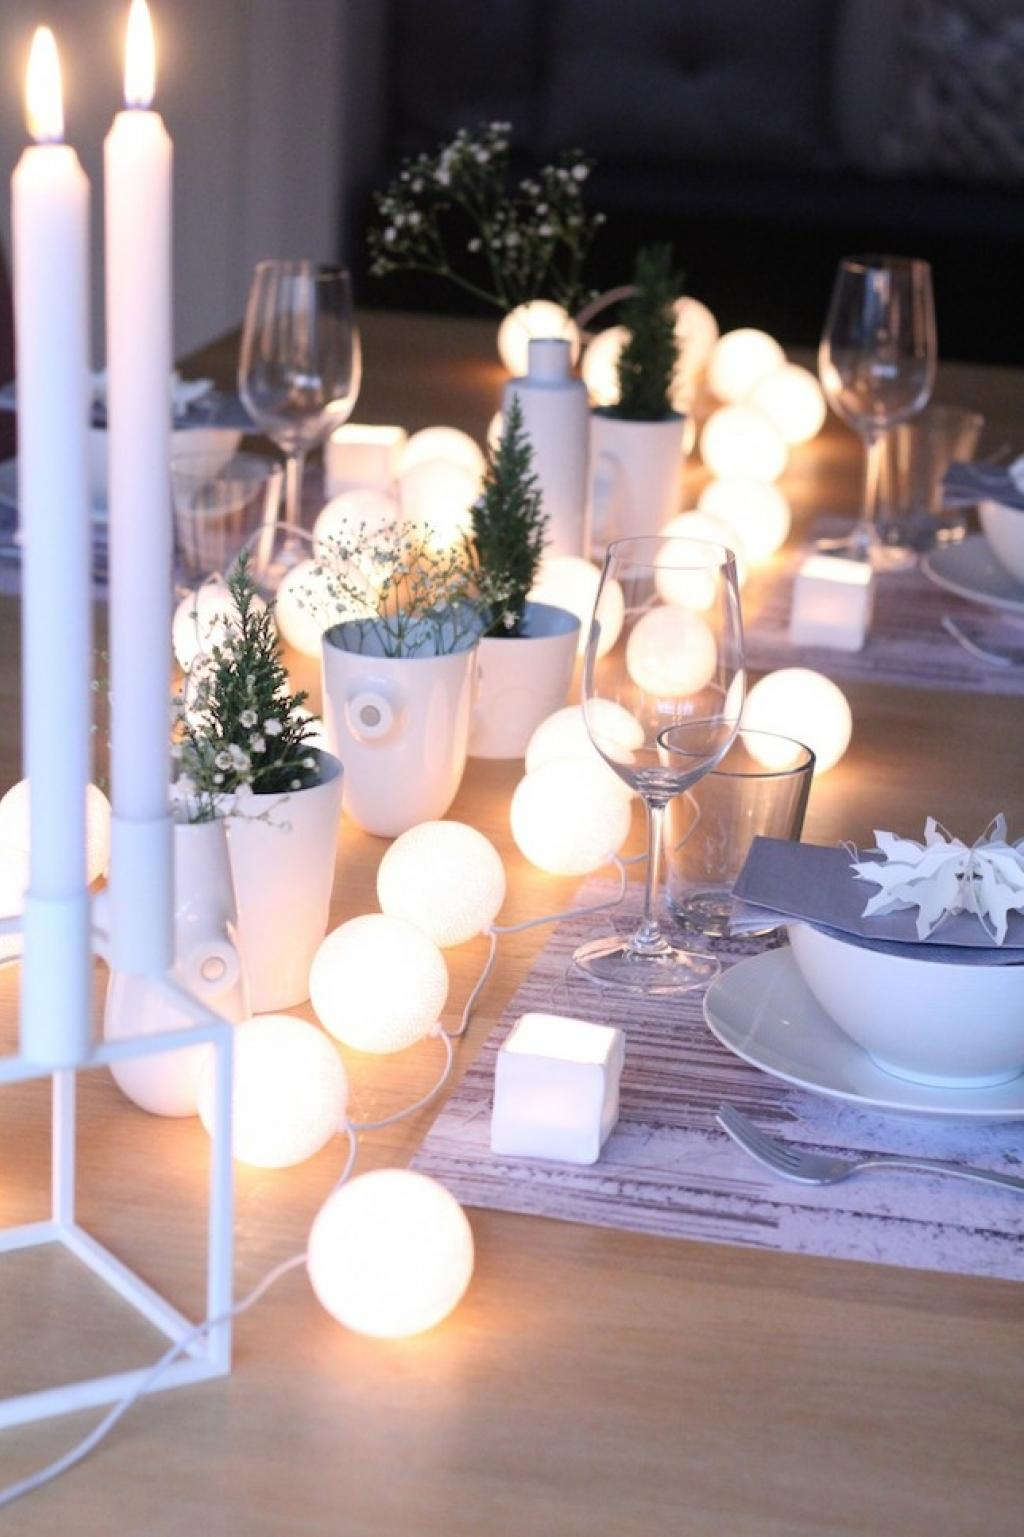 Diy home table decorations - 5 Miniature White Christmas